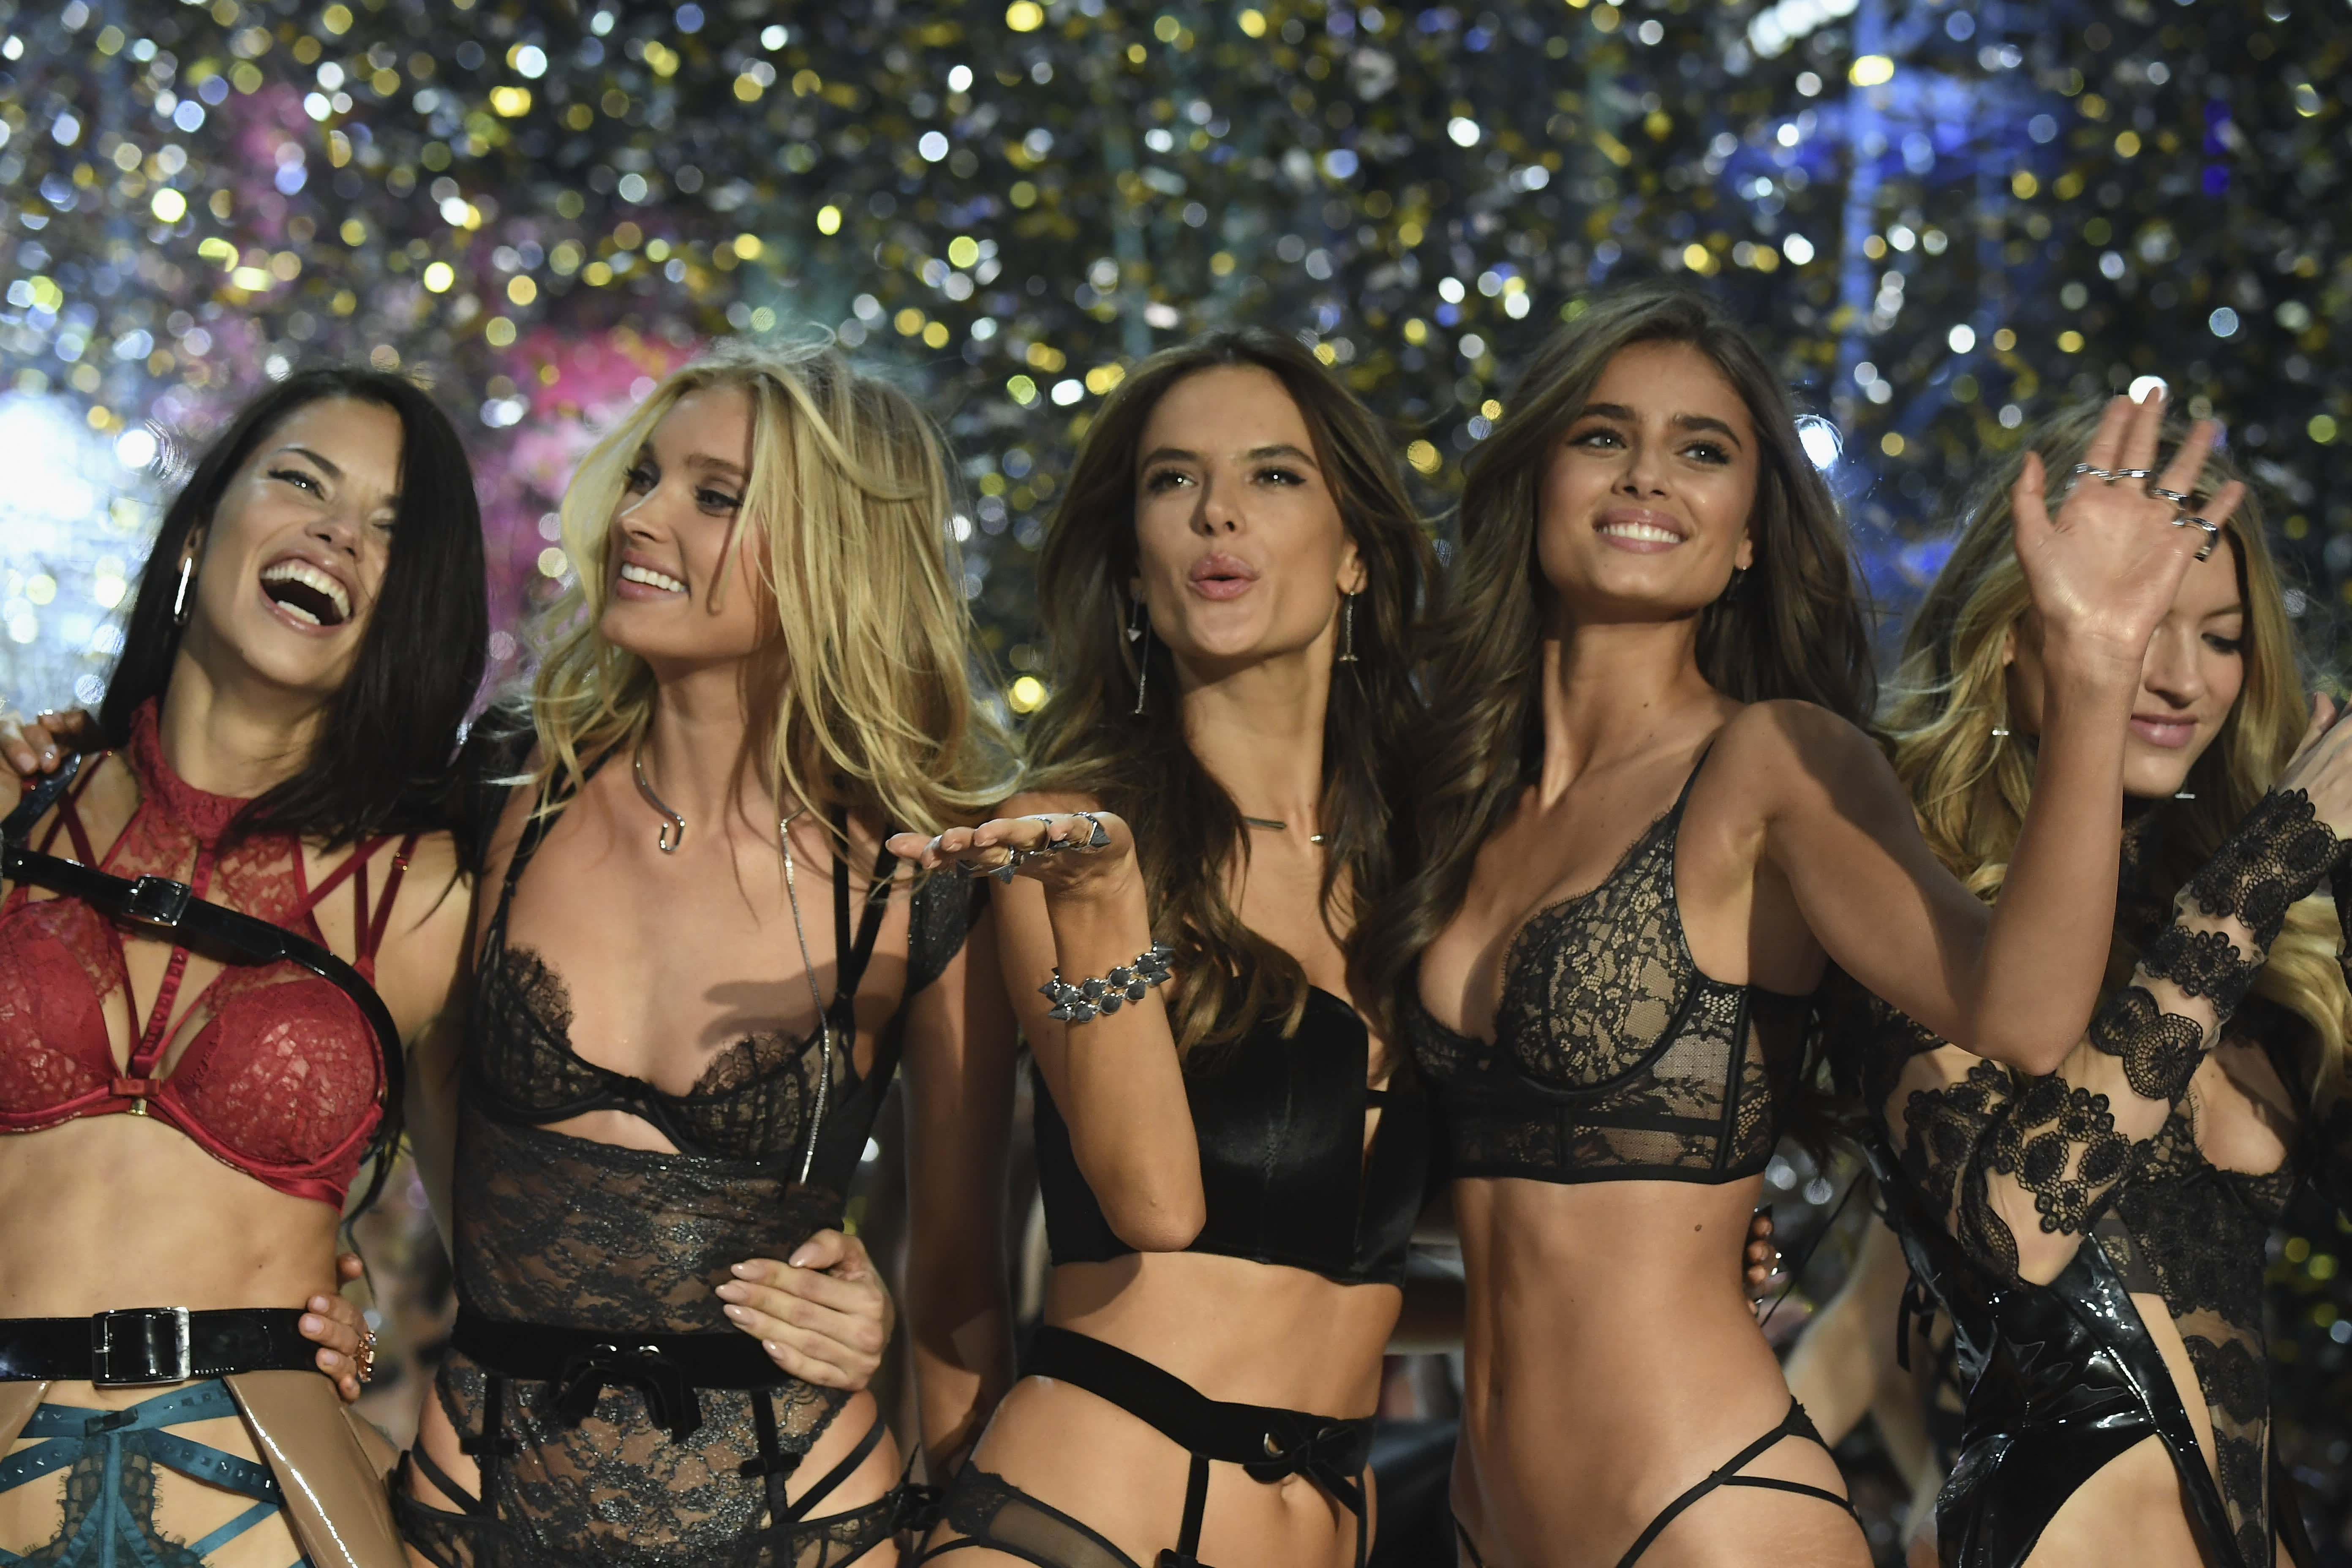 65a2c432af2b4 Victoria s Secret is still trying to sell sexy. And it isn t working